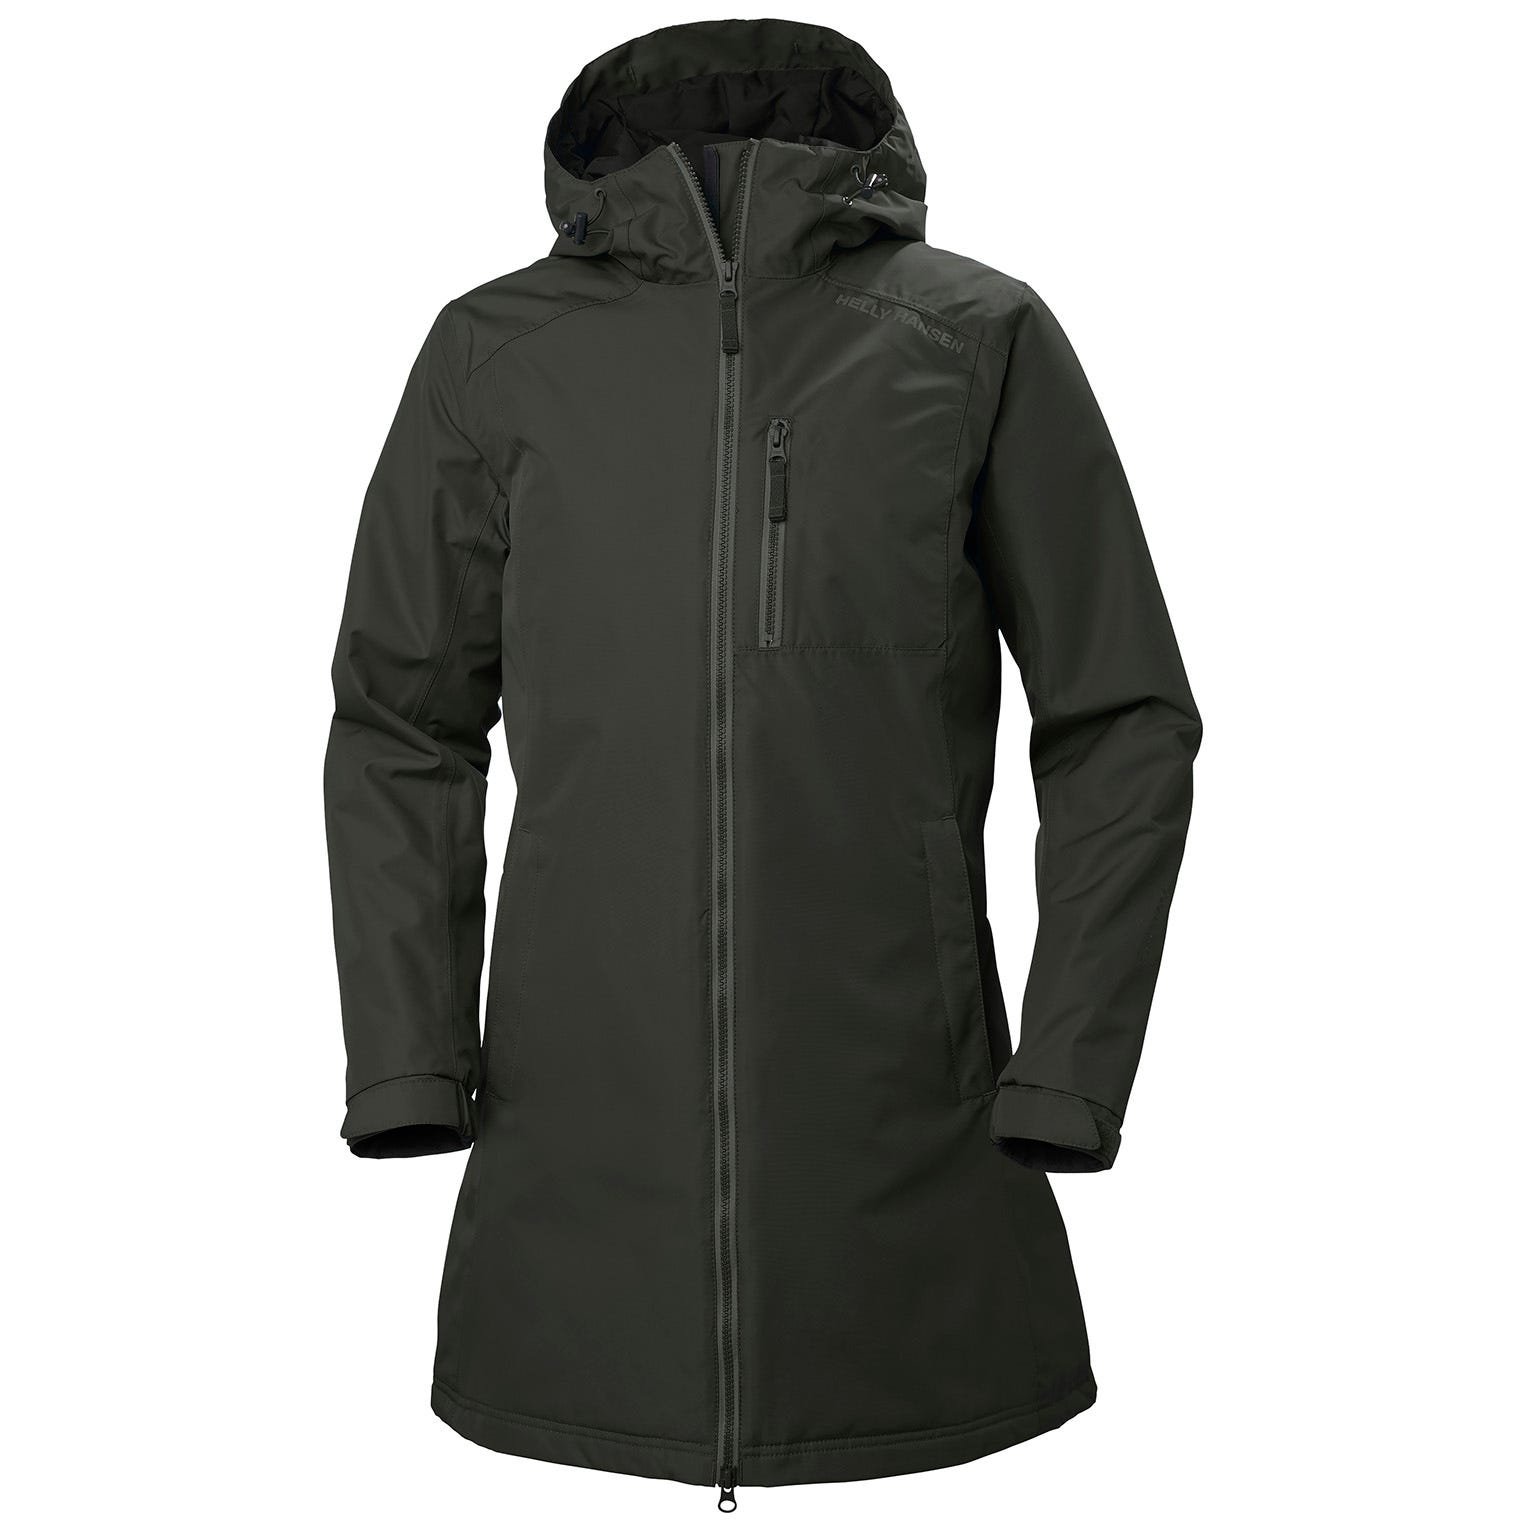 Helly Hansen Womens Long Belfast Winter Jacket Parka Green XS